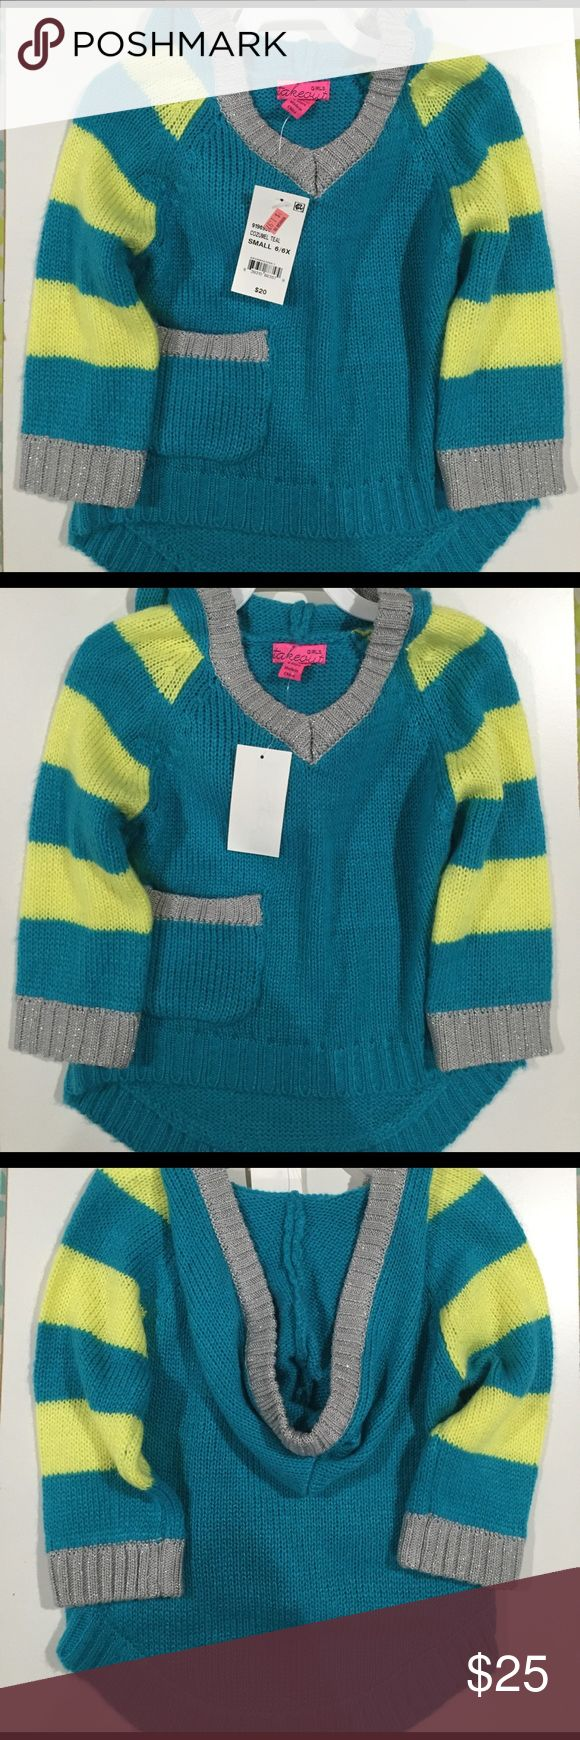 Girls High/Low Sweater W/Hood Size Small 6/6X Cozumel Teal Size Small 98% Acrylic 2% Metalic Other